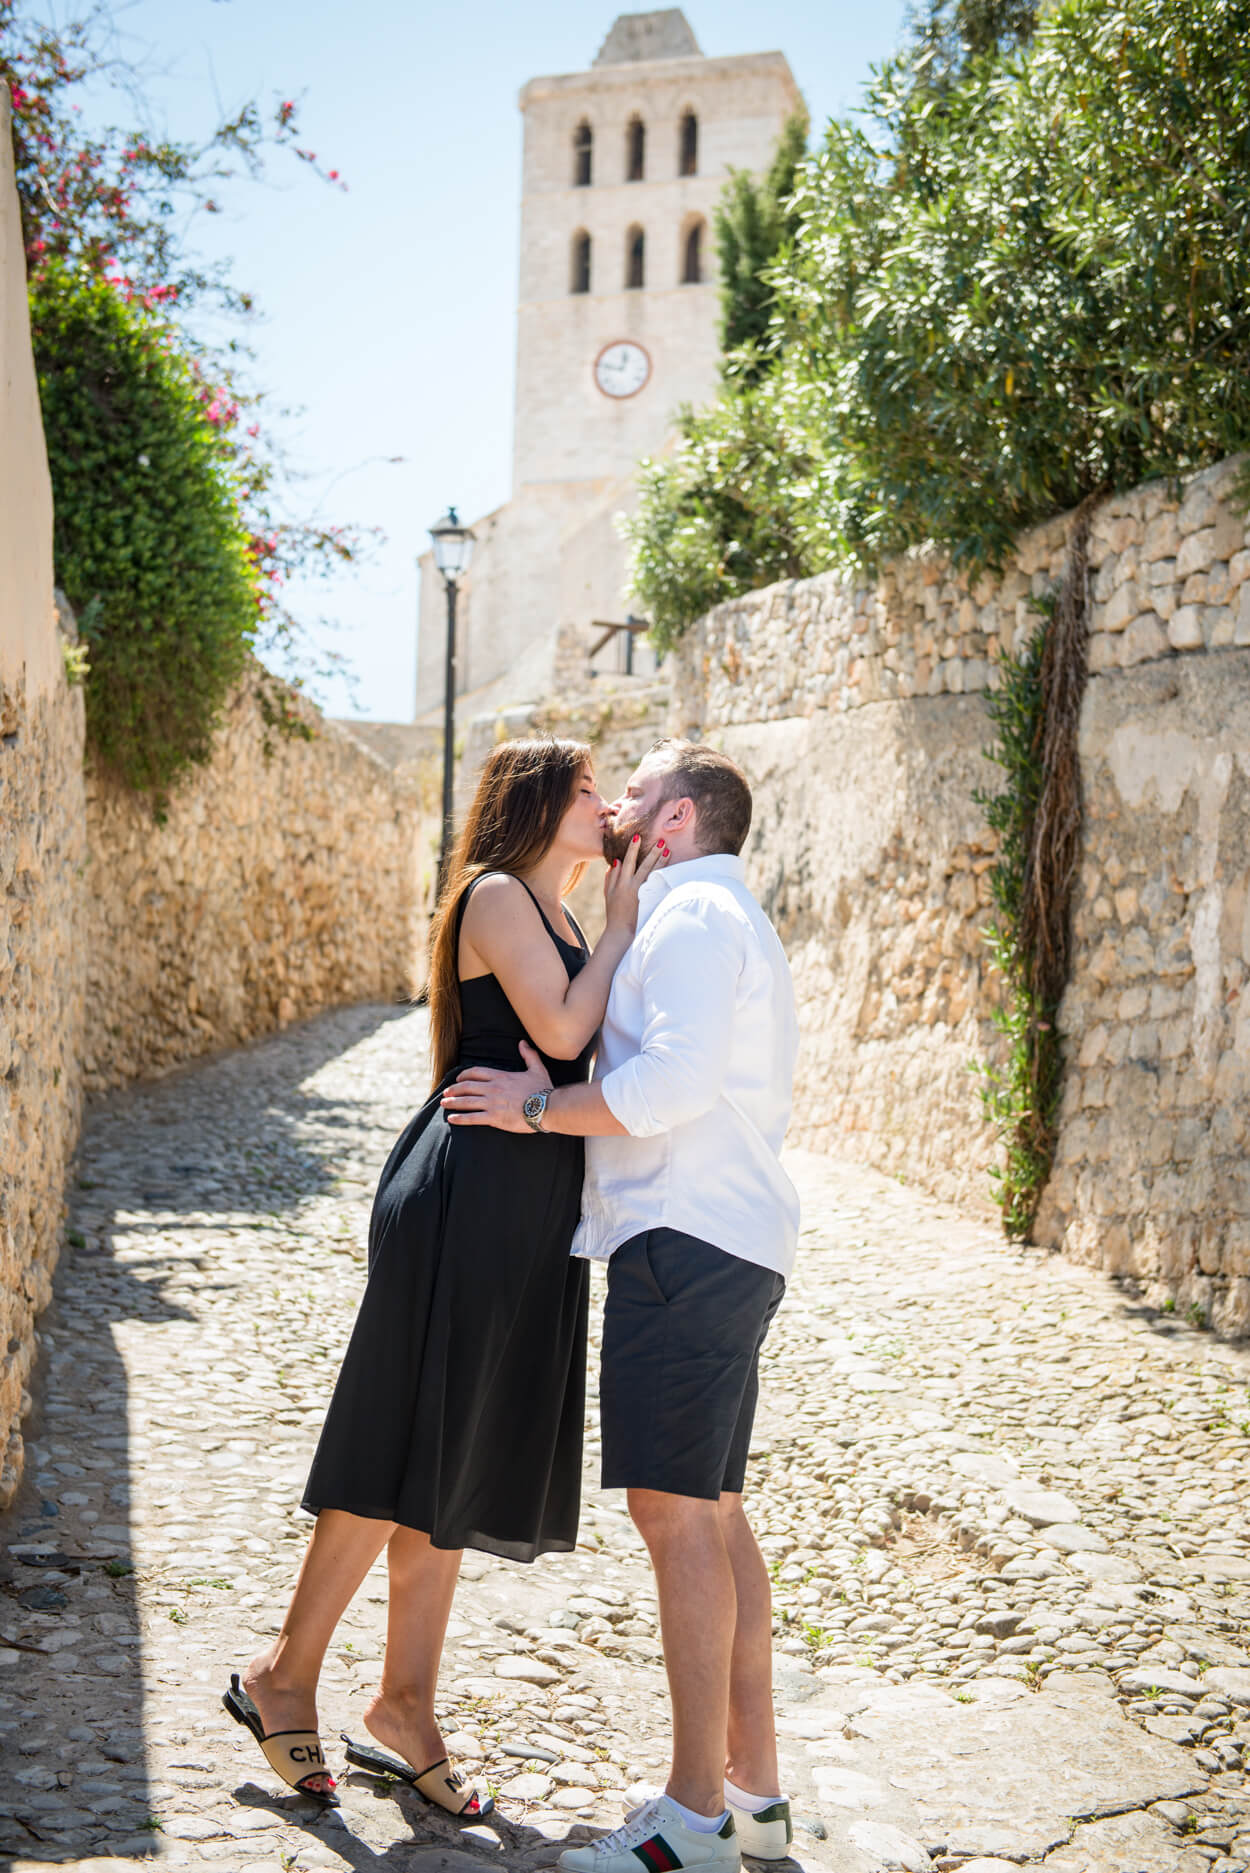 couple just engaged portrait dalt villa ibiza cathedral old town